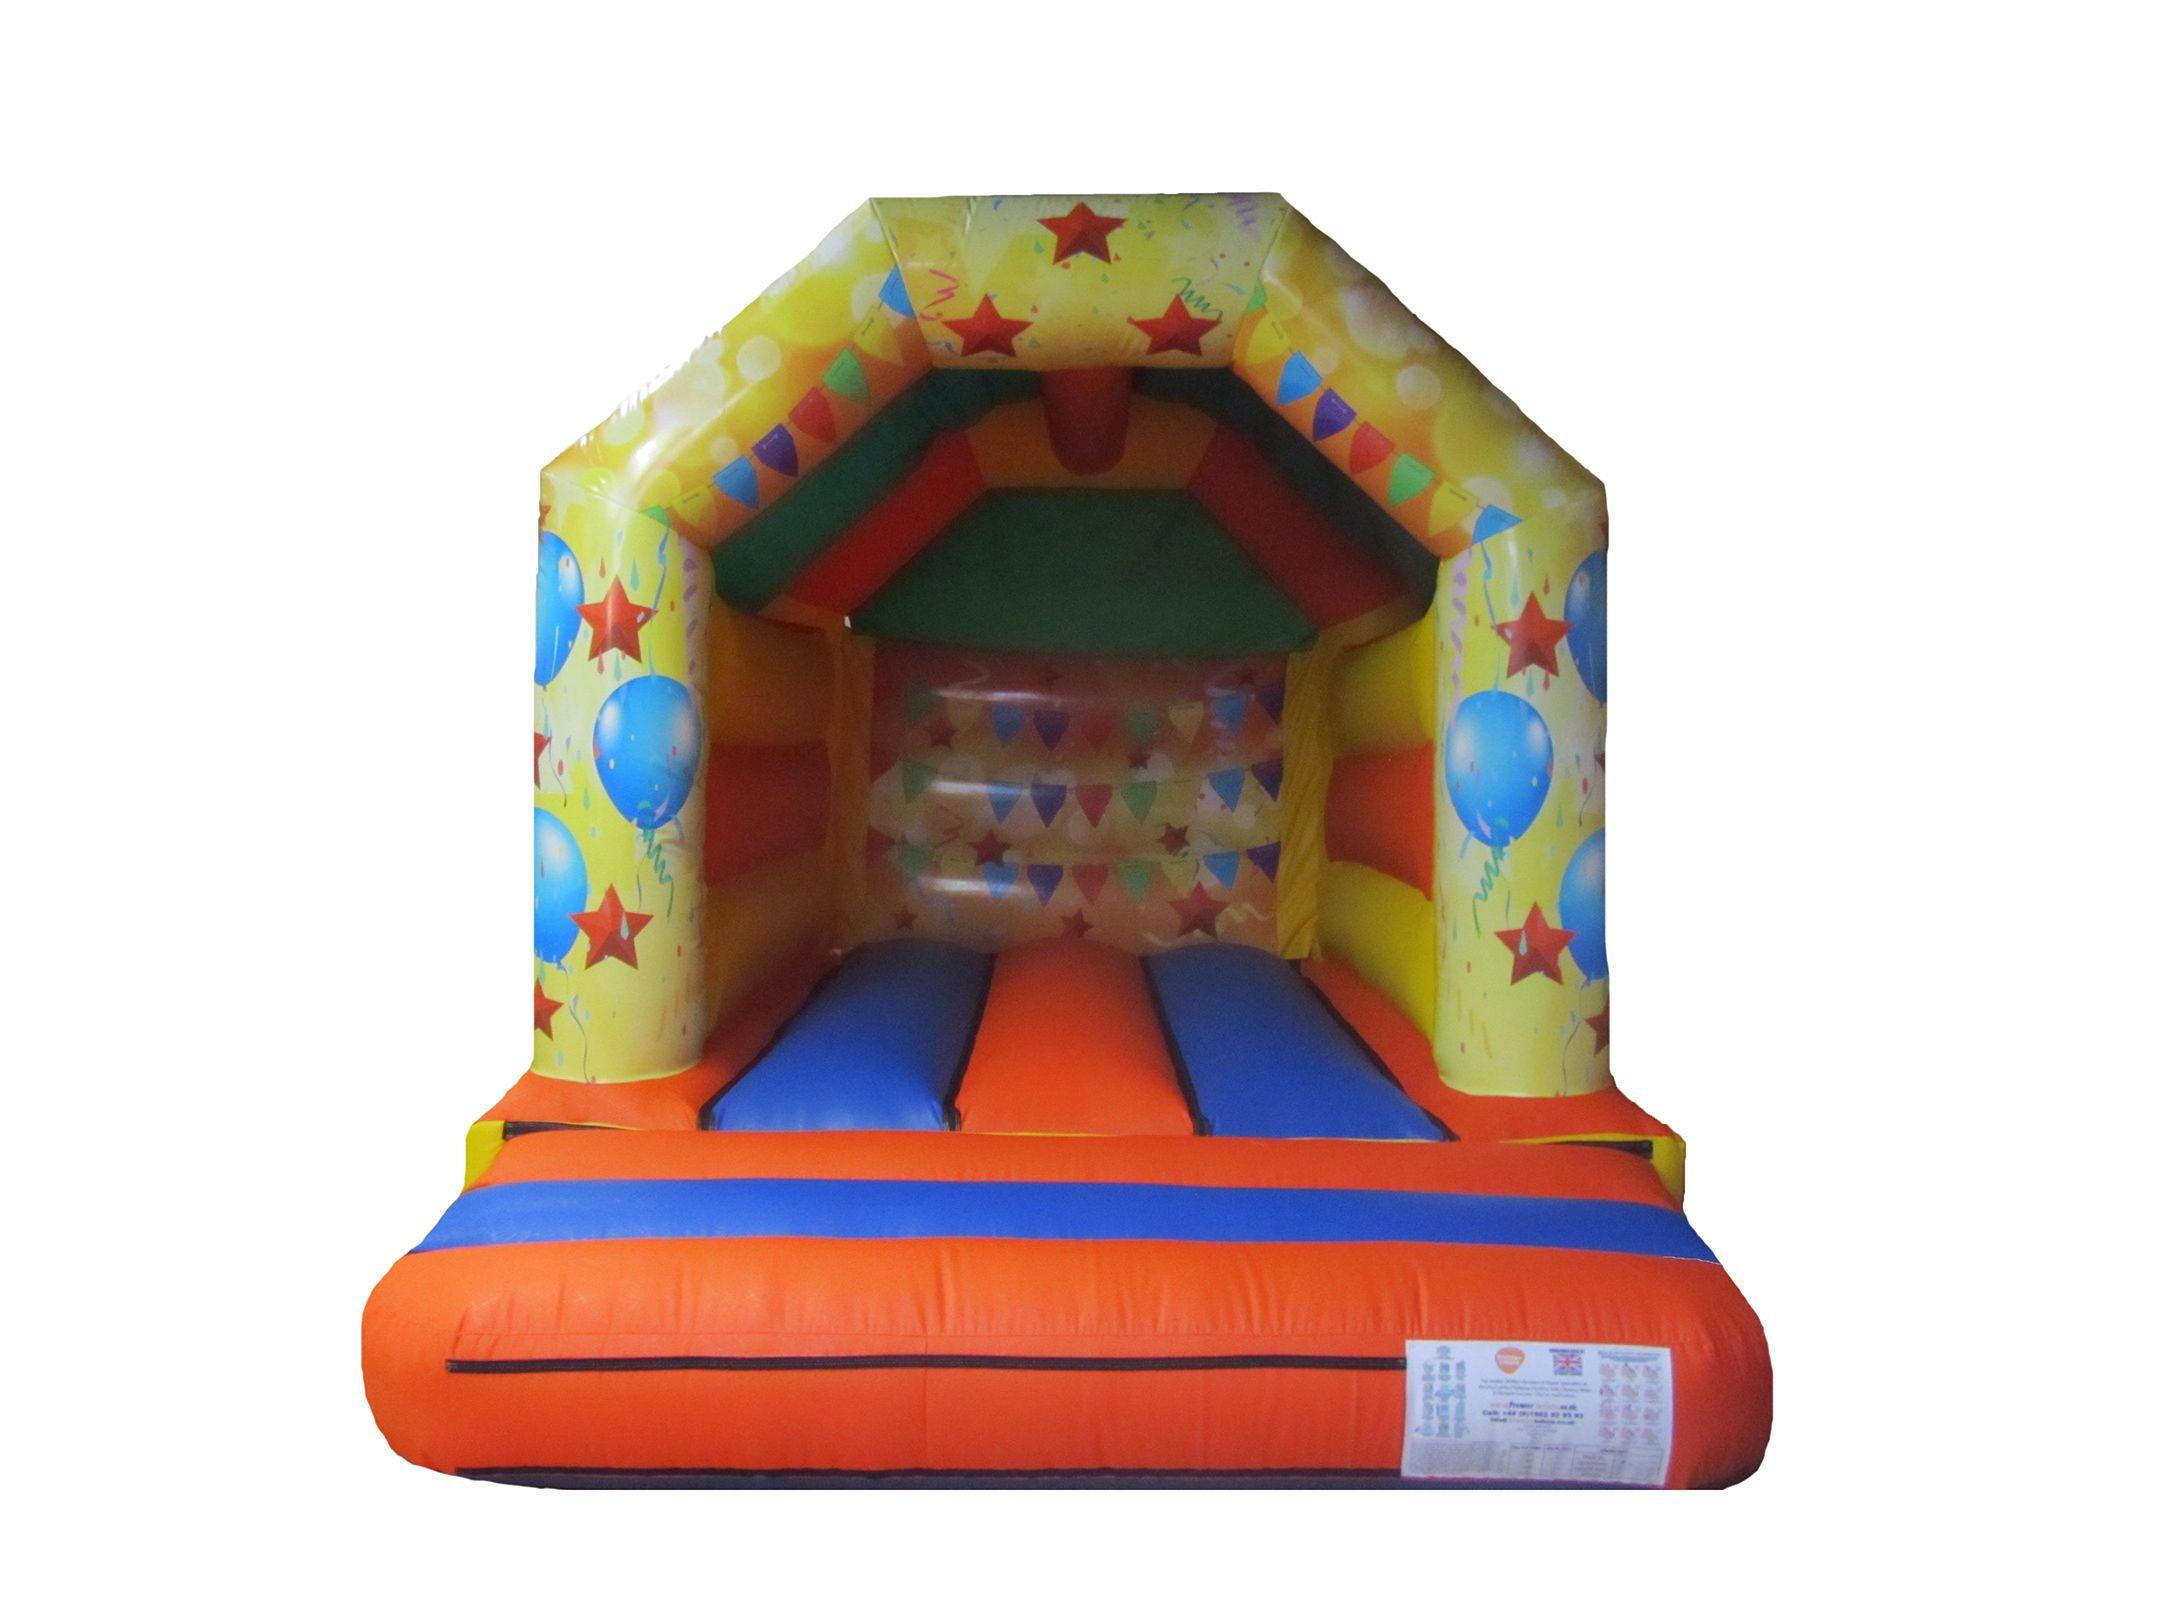 Commercial Party Themed Bouncy Castle for Sale